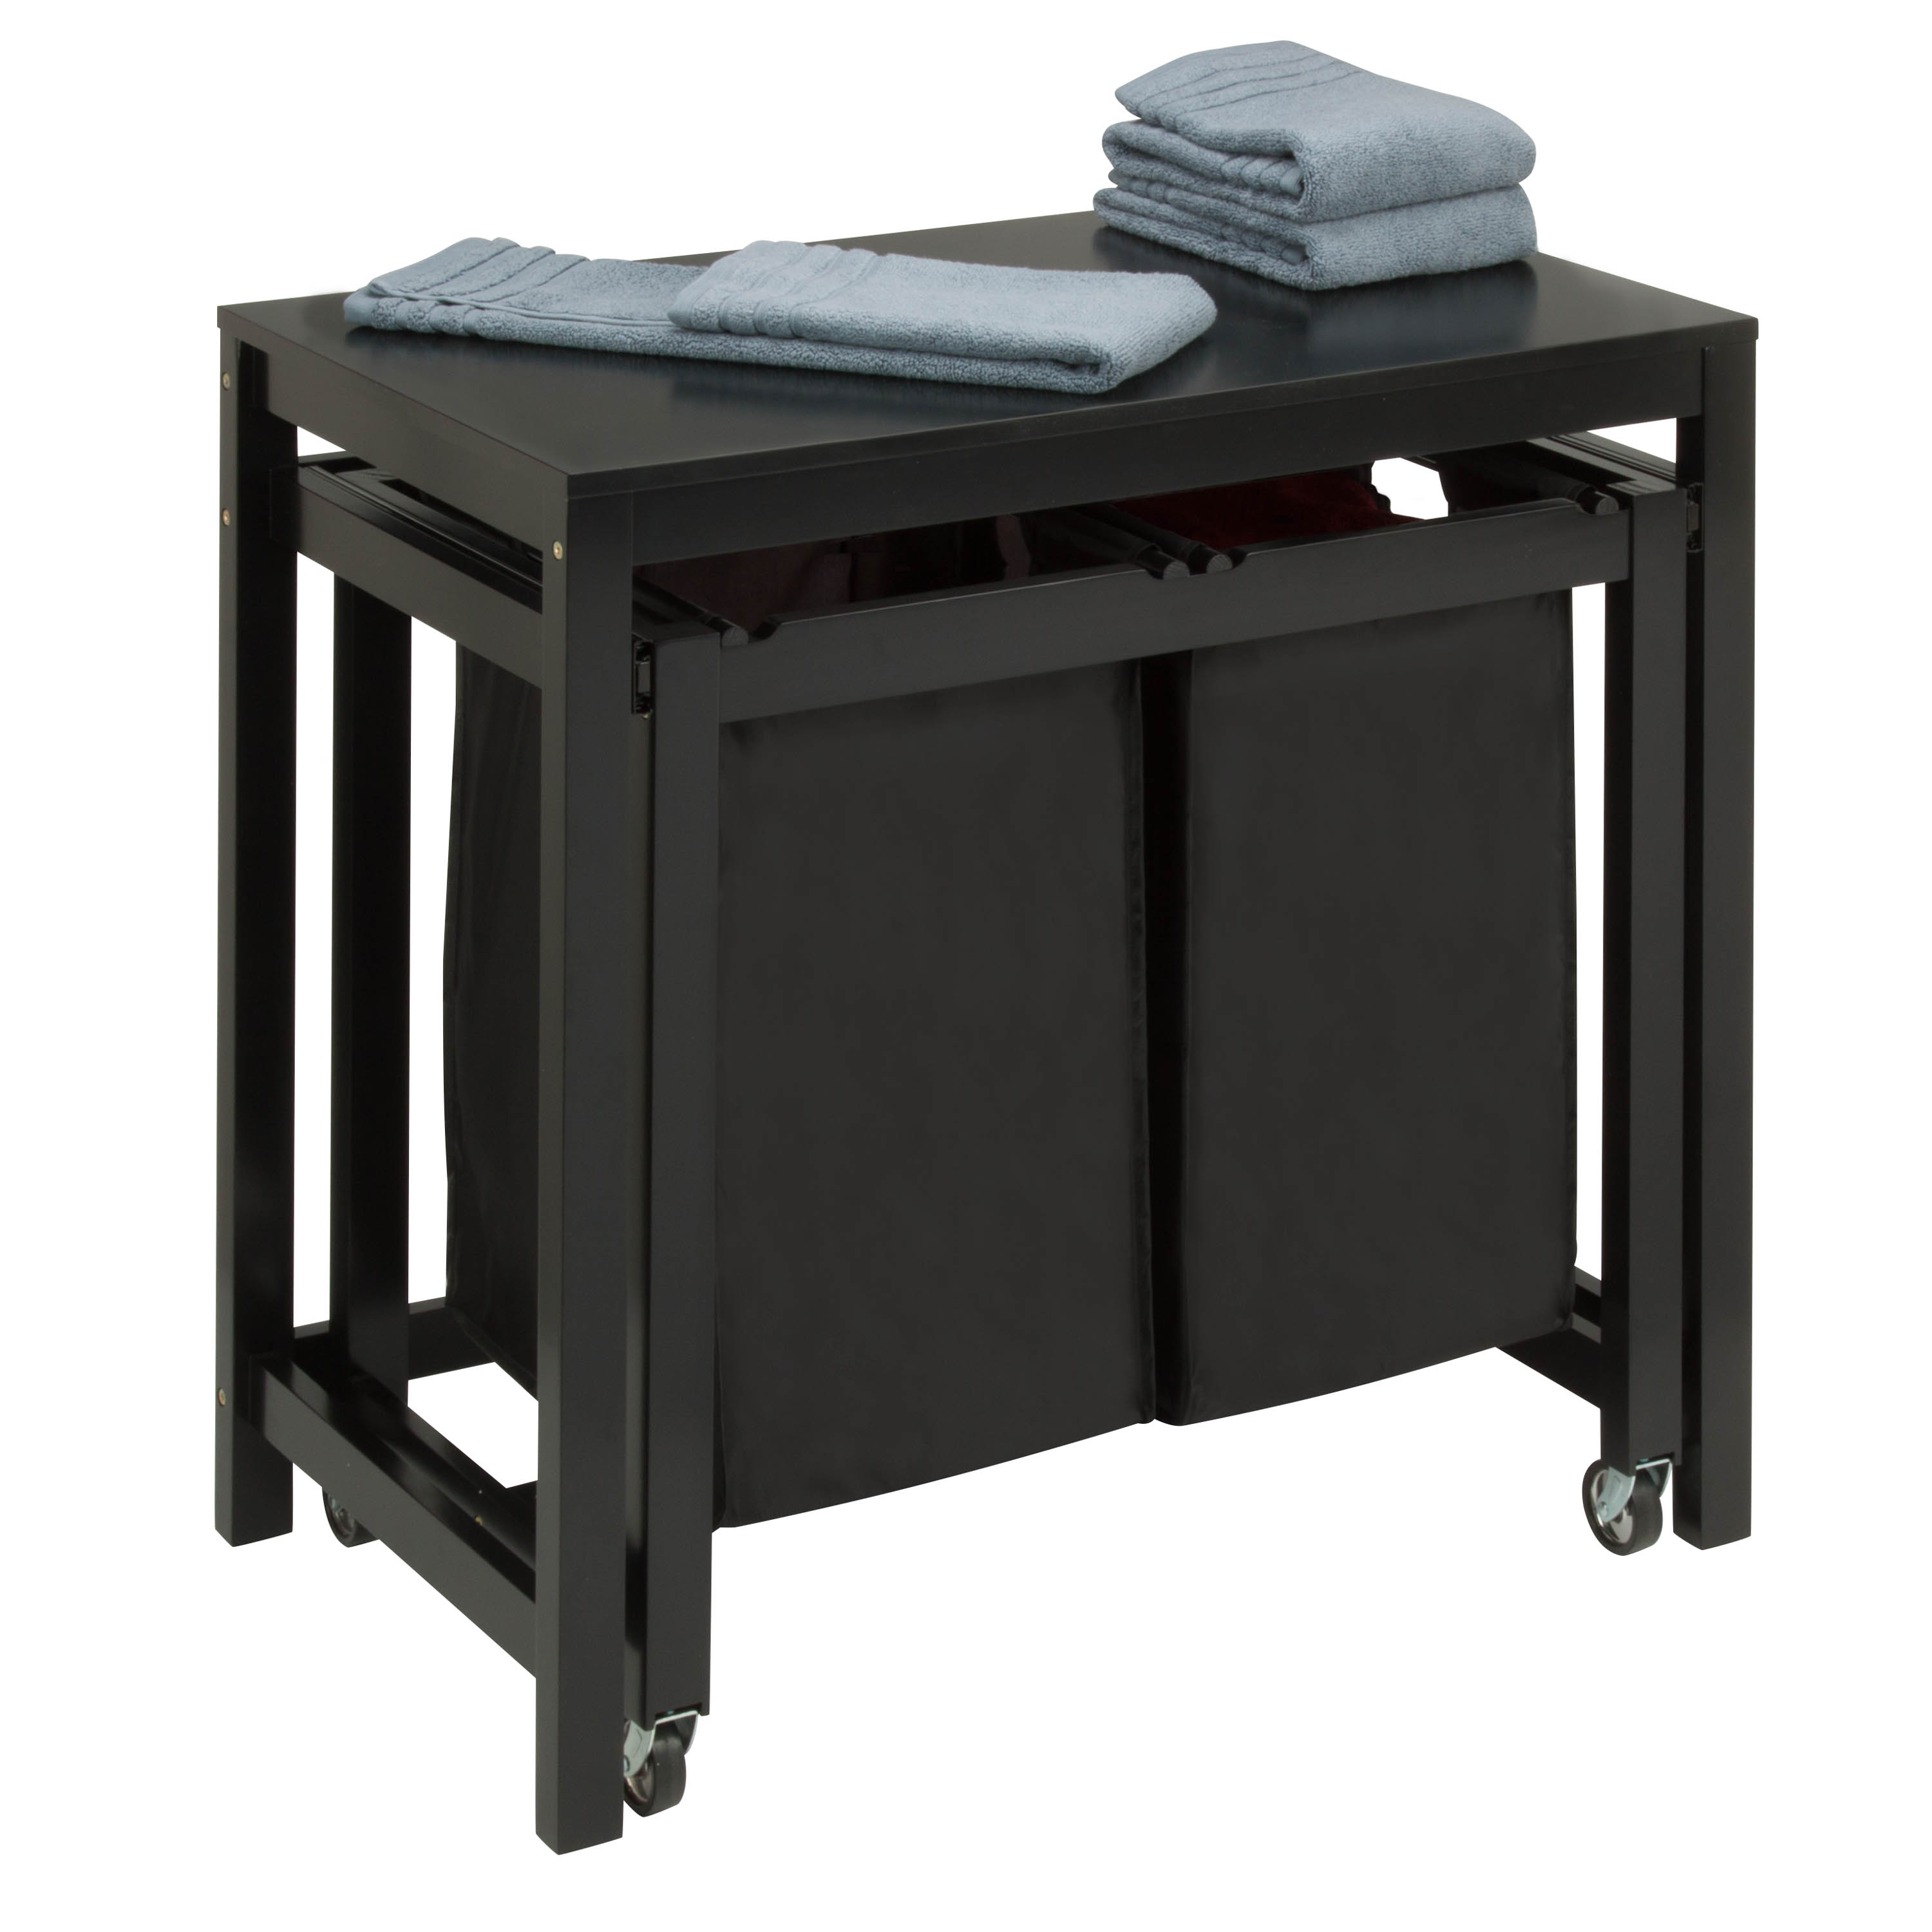 - Honey Can Do Wood Laundry Sorter And Folding Table With 2 Bags